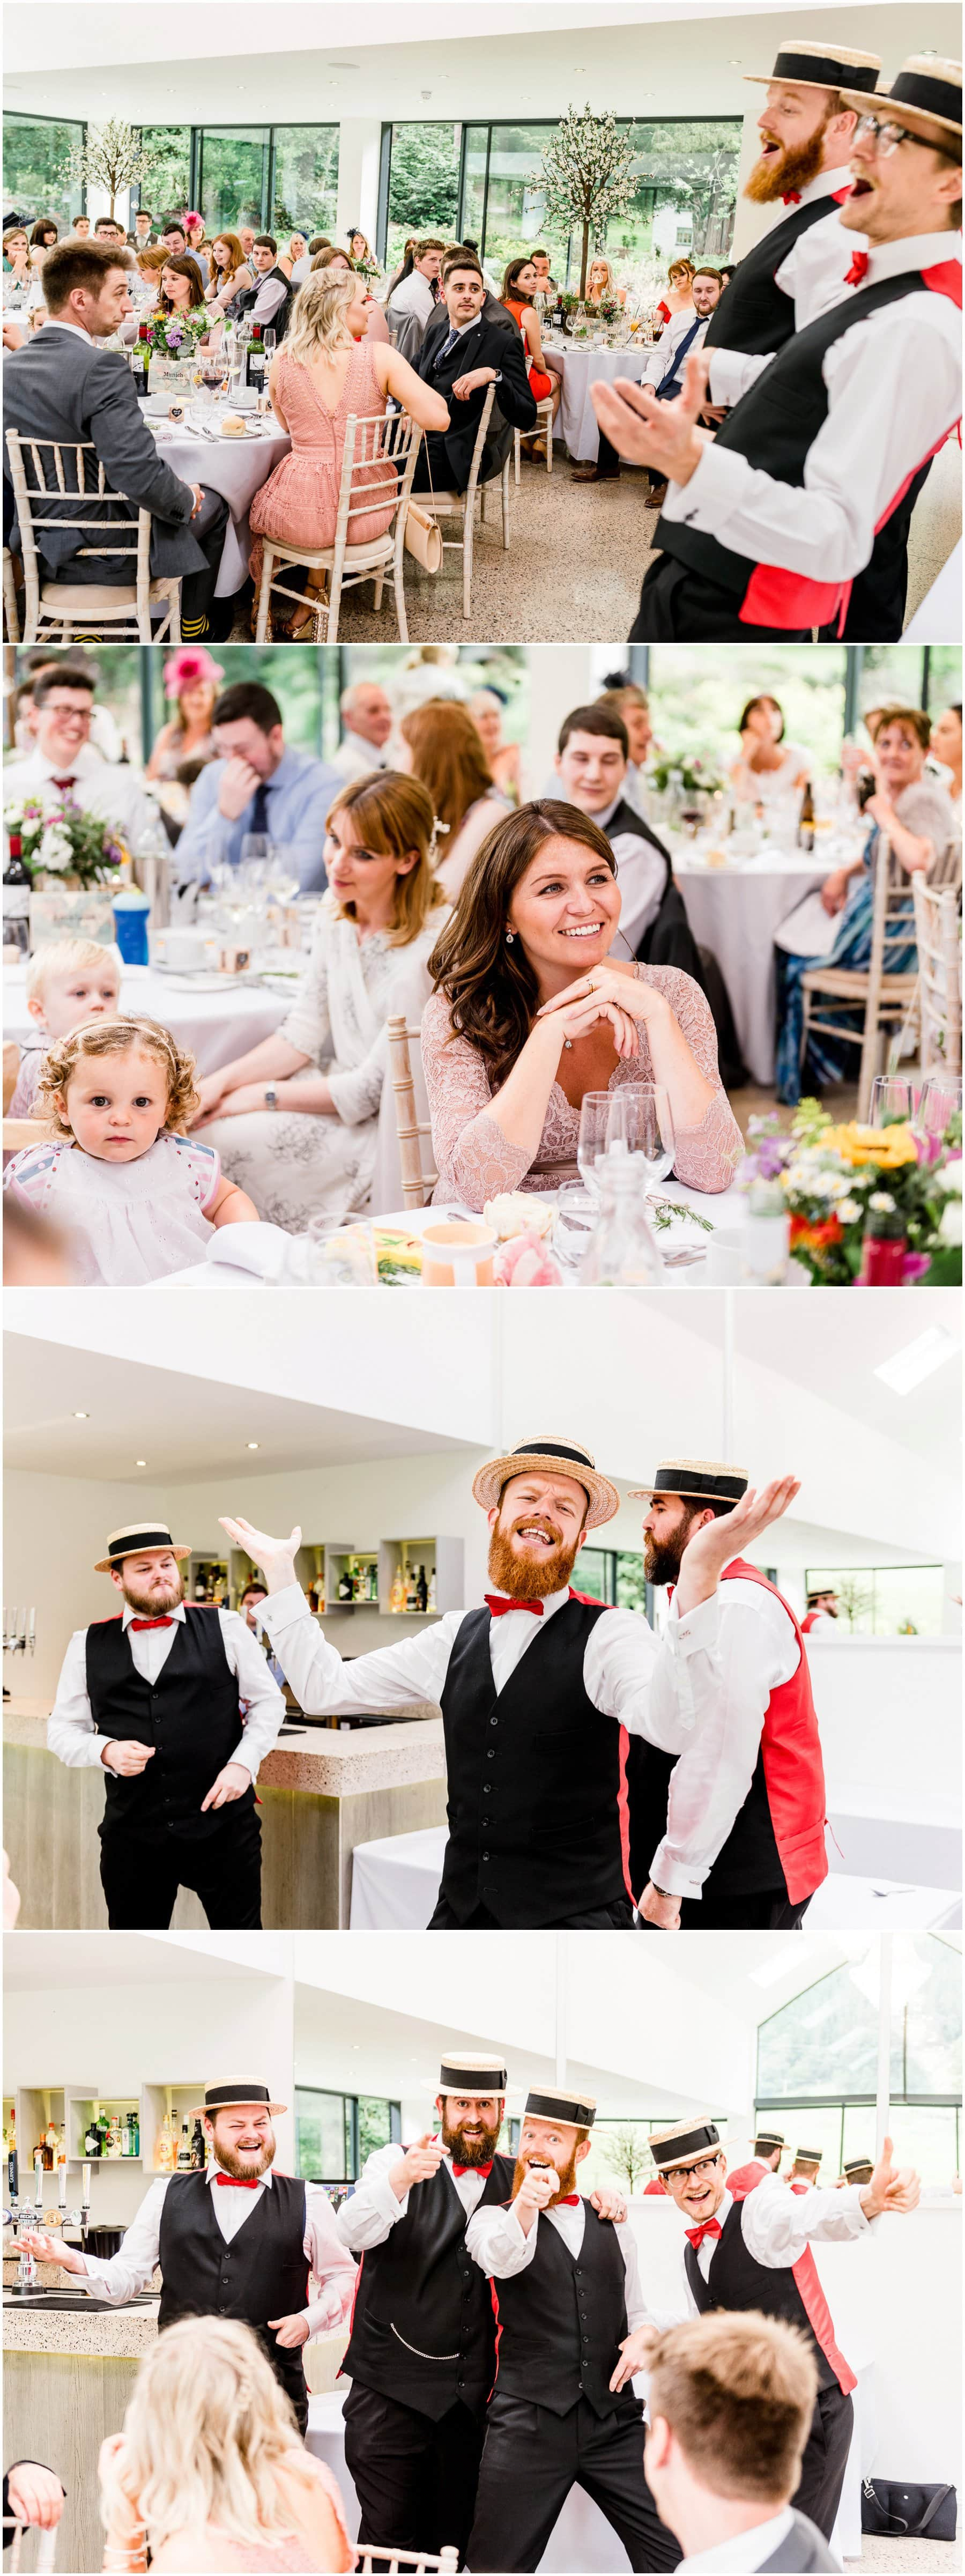 Ffion and Hefin's beautiful, elegant summer wedding at Ten Dwr Hall in Llangollen, Wales with wild flowers and sage colours by West Midlands and Wales Wedding photographer Lisa Carpenter Photography, specialising in cool, contemporary wedding photos. Afternoon Delight Barbershop Quartet entertaining the guests.